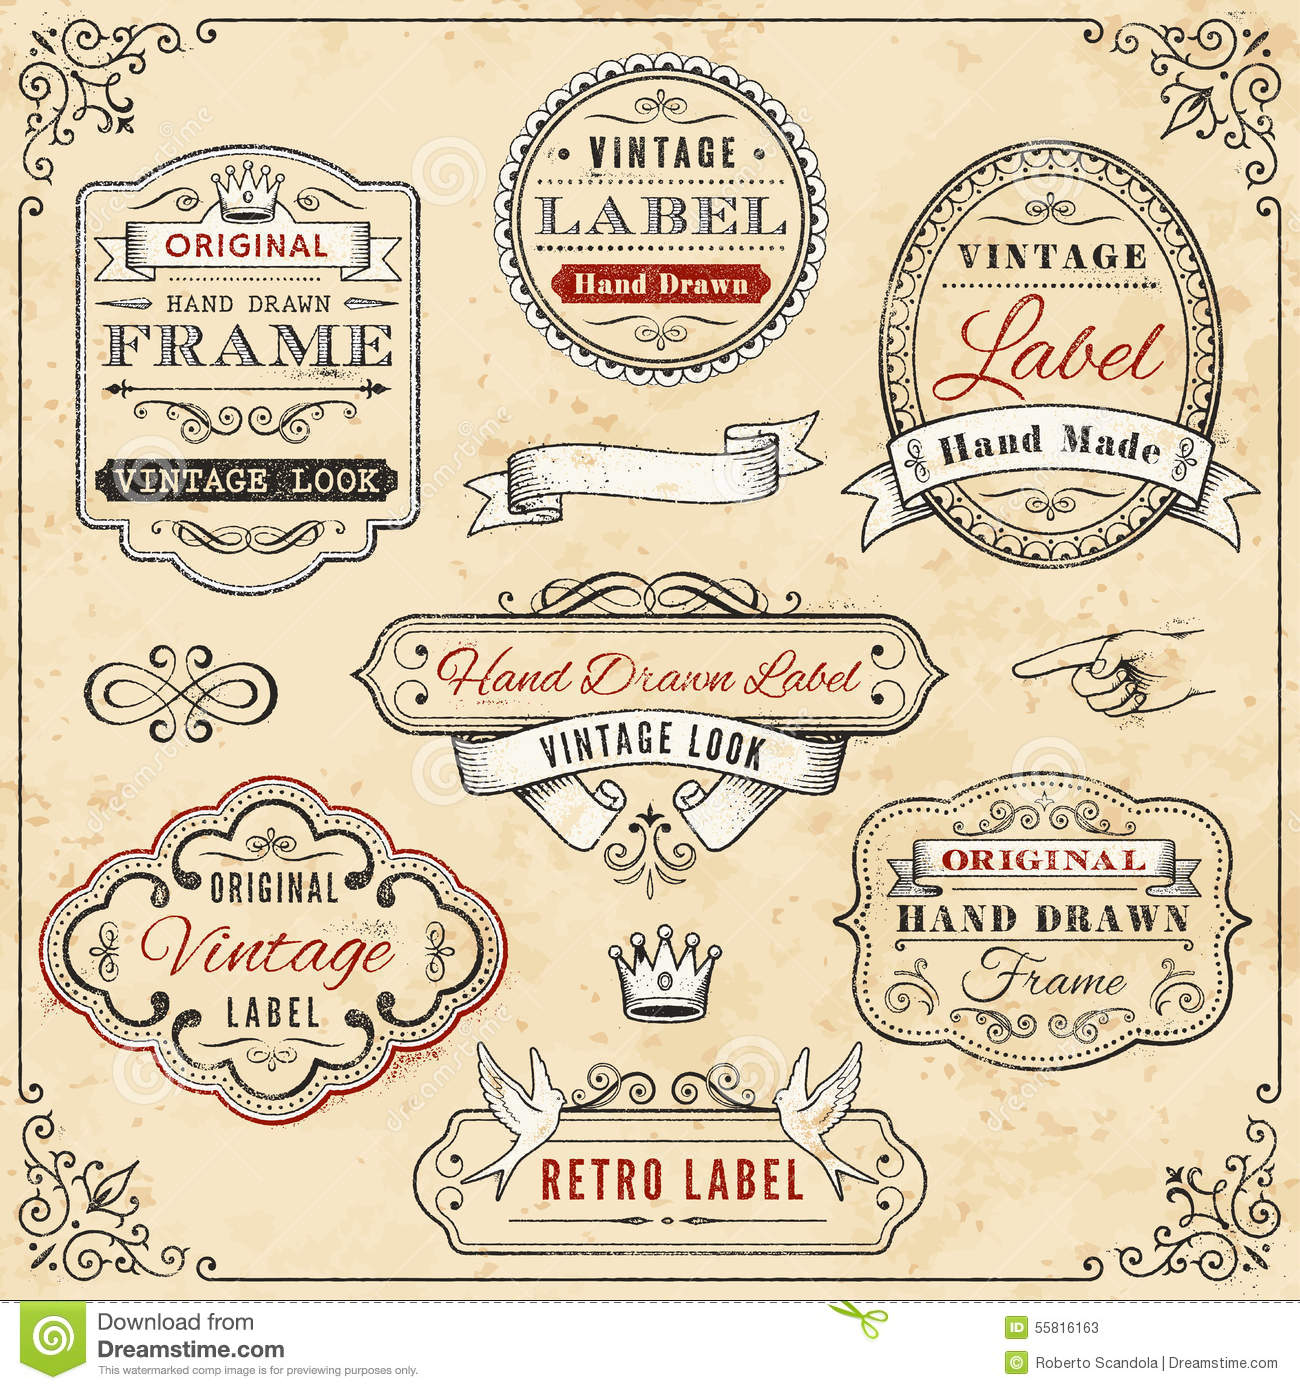 z label templates - hand drawn vintage framed label templates stock vector